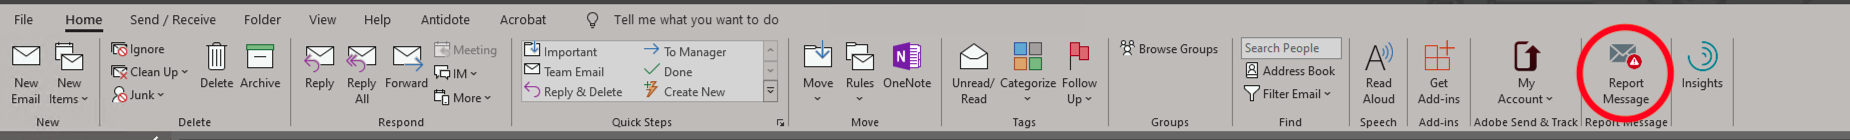 Outlook home ribbon with Report message option circled on a pc